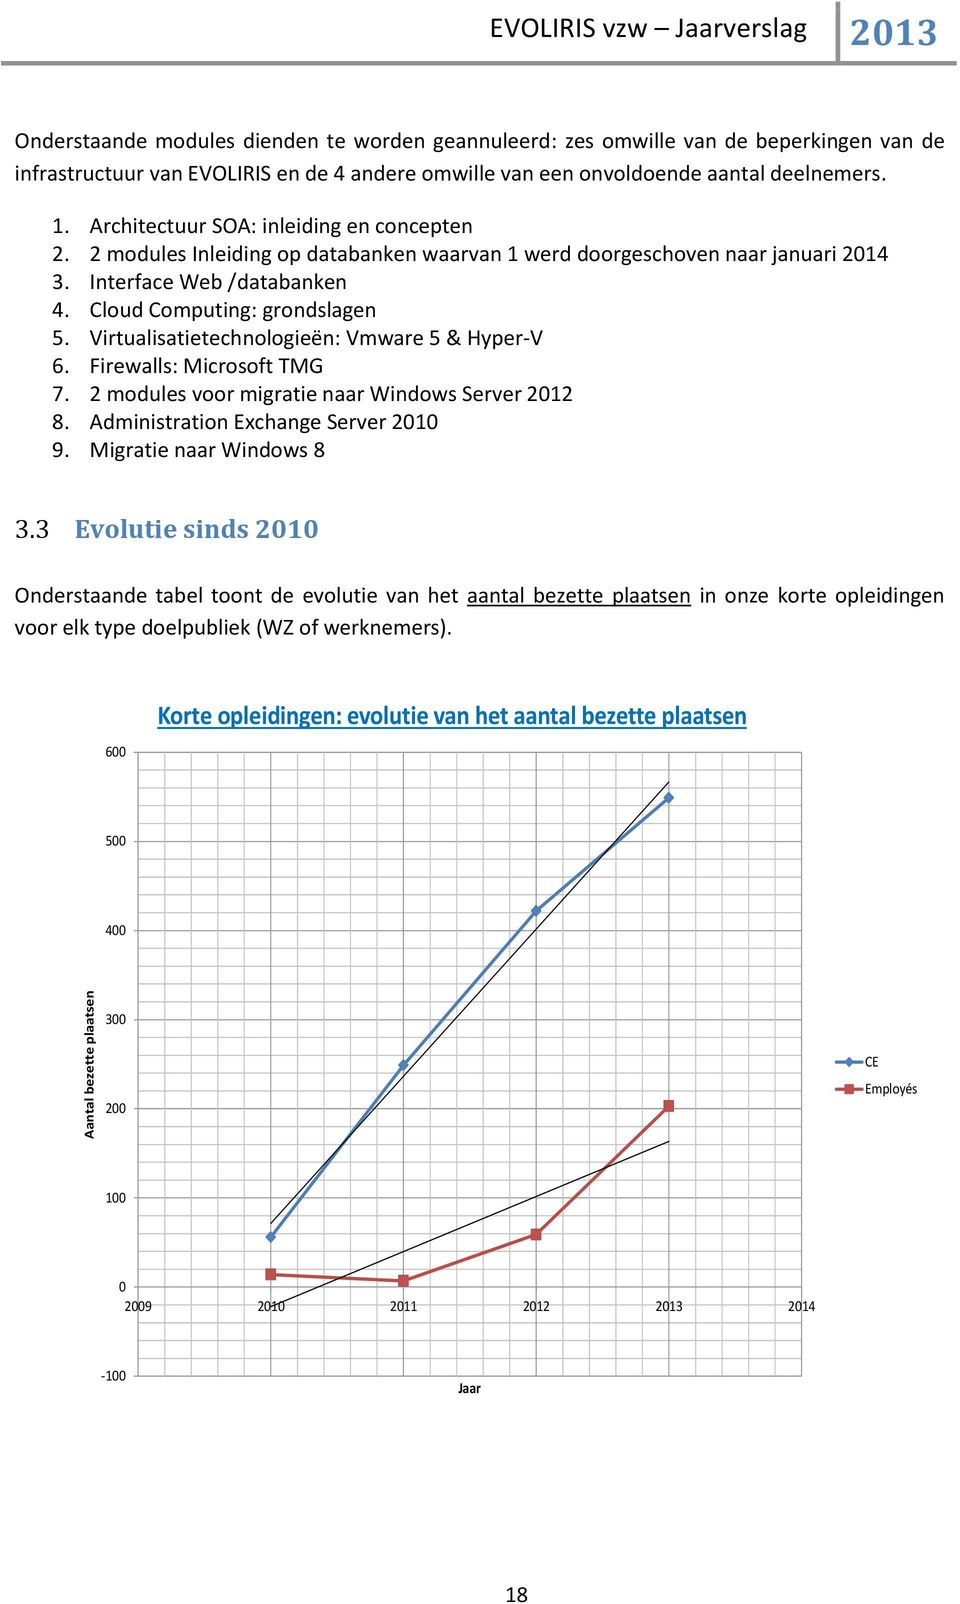 Cloud Computing: grondslagen 5. Virtualisatietechnologieën: Vmware 5 & Hyper-V 6. Firewalls: Microsoft TMG 7. 2 modules voor migratie naar Windows Server 2012 8. Administration Exchange Server 2010 9.